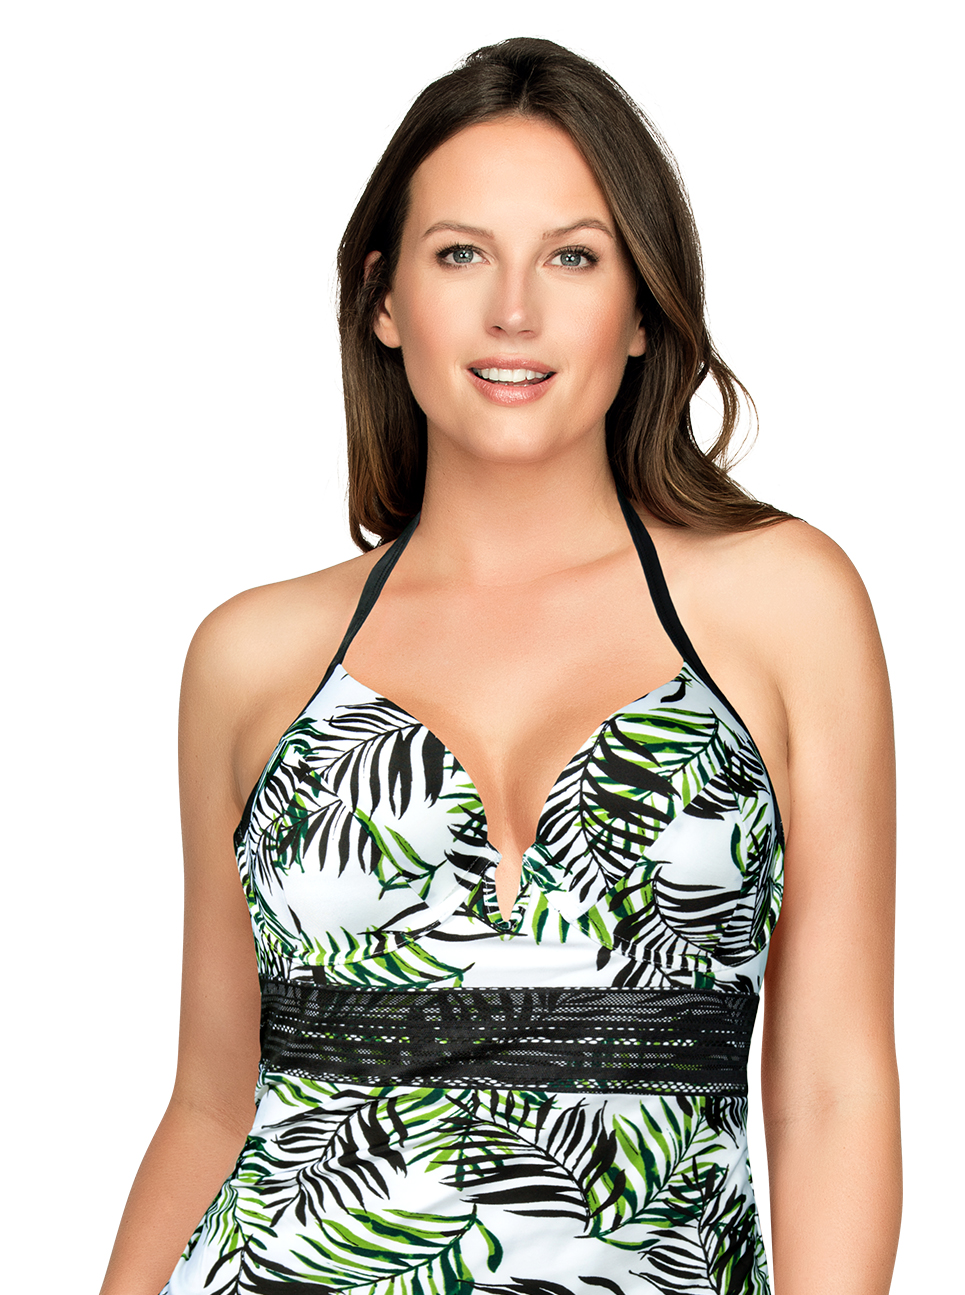 PARFAIT Christy TankiniS8057 WildLeaves Front1 - Christy Tankini Wild Leaves S8057